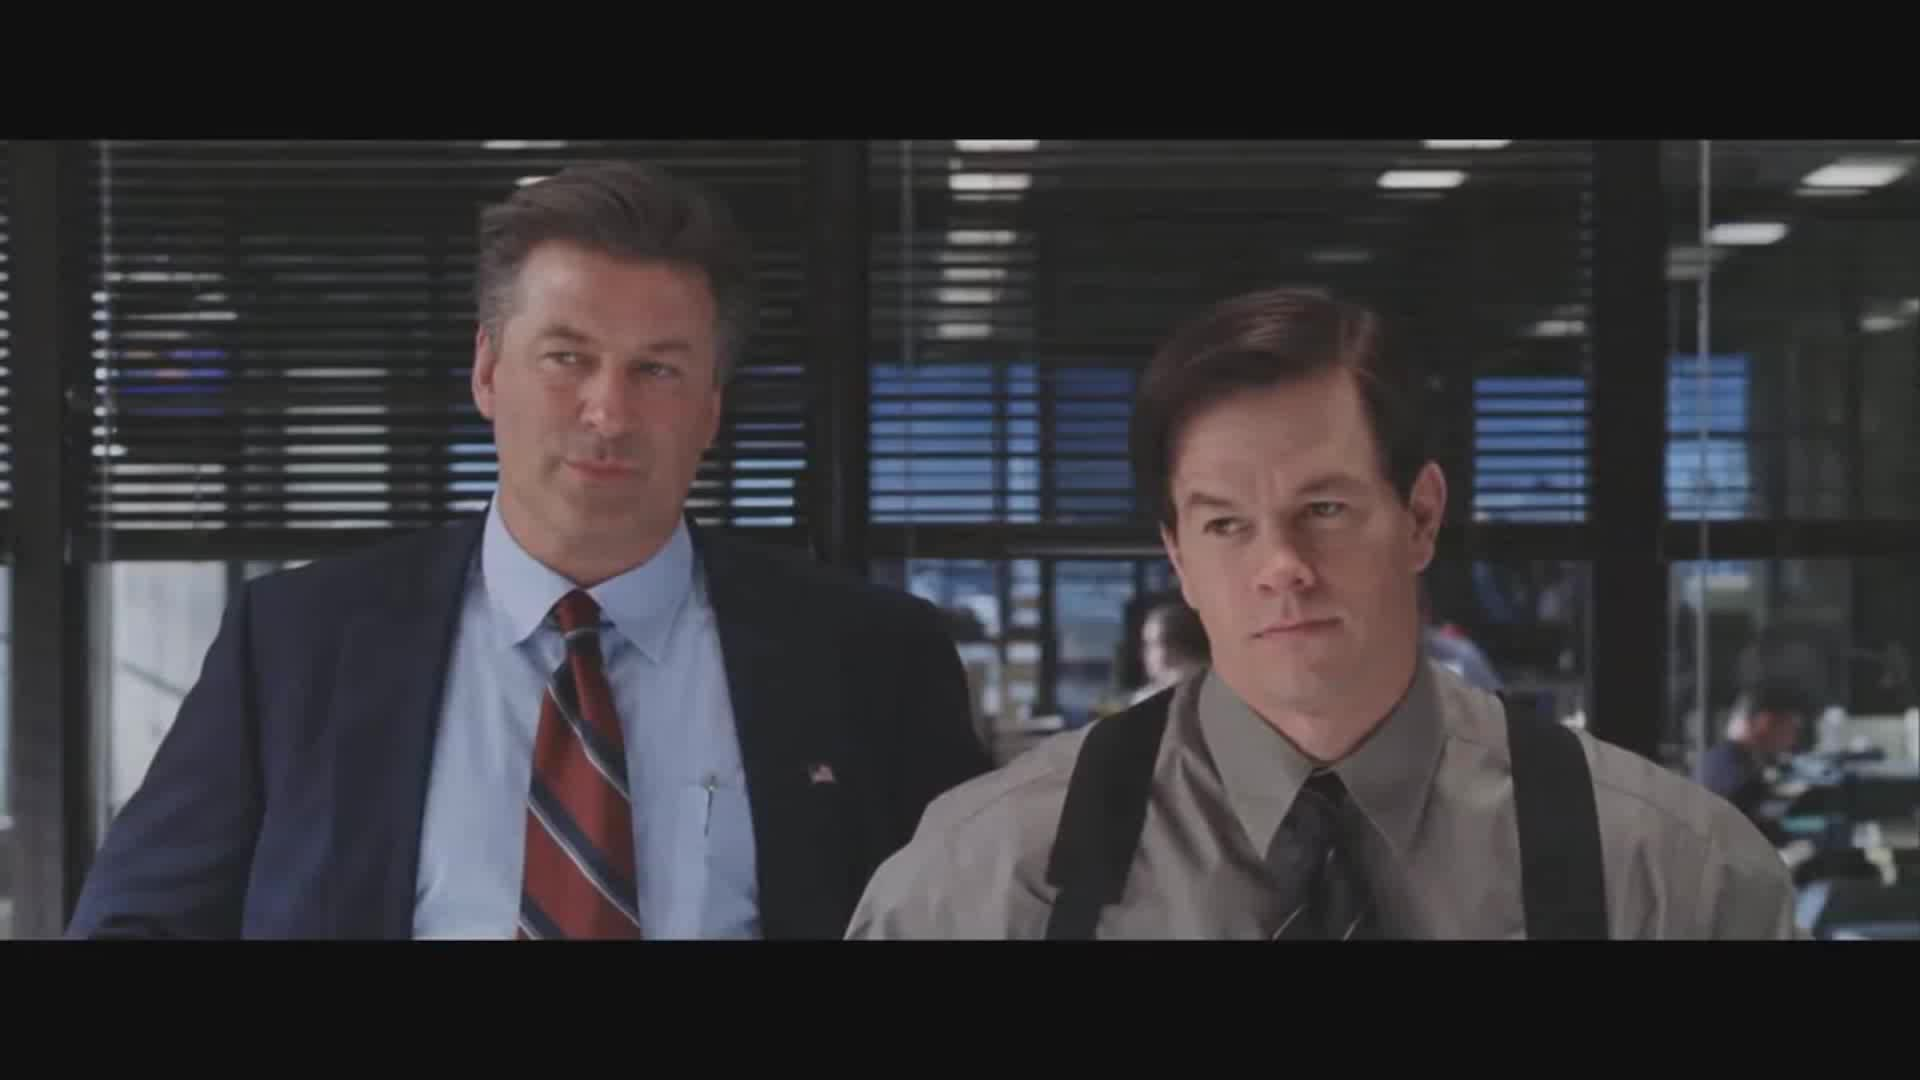 Accident, Clique, Extreme, Fail, Film (Film), Freestyle, Making, Mark Wahlberg (Celebrity), Pain, Scenes, The Departed (Film), atv, fotball, manchester, mark wahlberg, maybe, maybe fuck yourself, maybe not, sport, the departed, The Departed | Maybe Maybe not Maybe fuck yourself GIFs